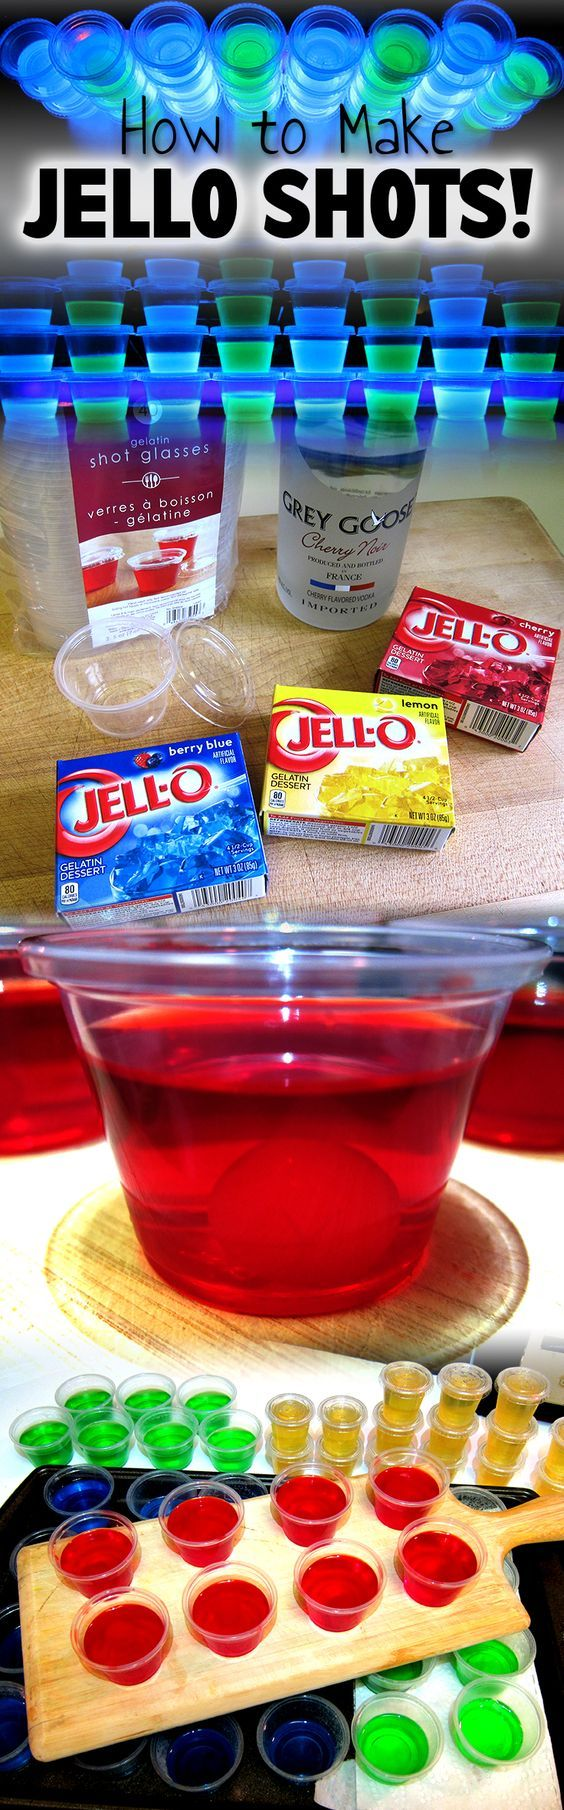 HOW TO MAKE JELLO SHOTS - The basic Jello Shot recipe, and also many more flavors of jello shots!: